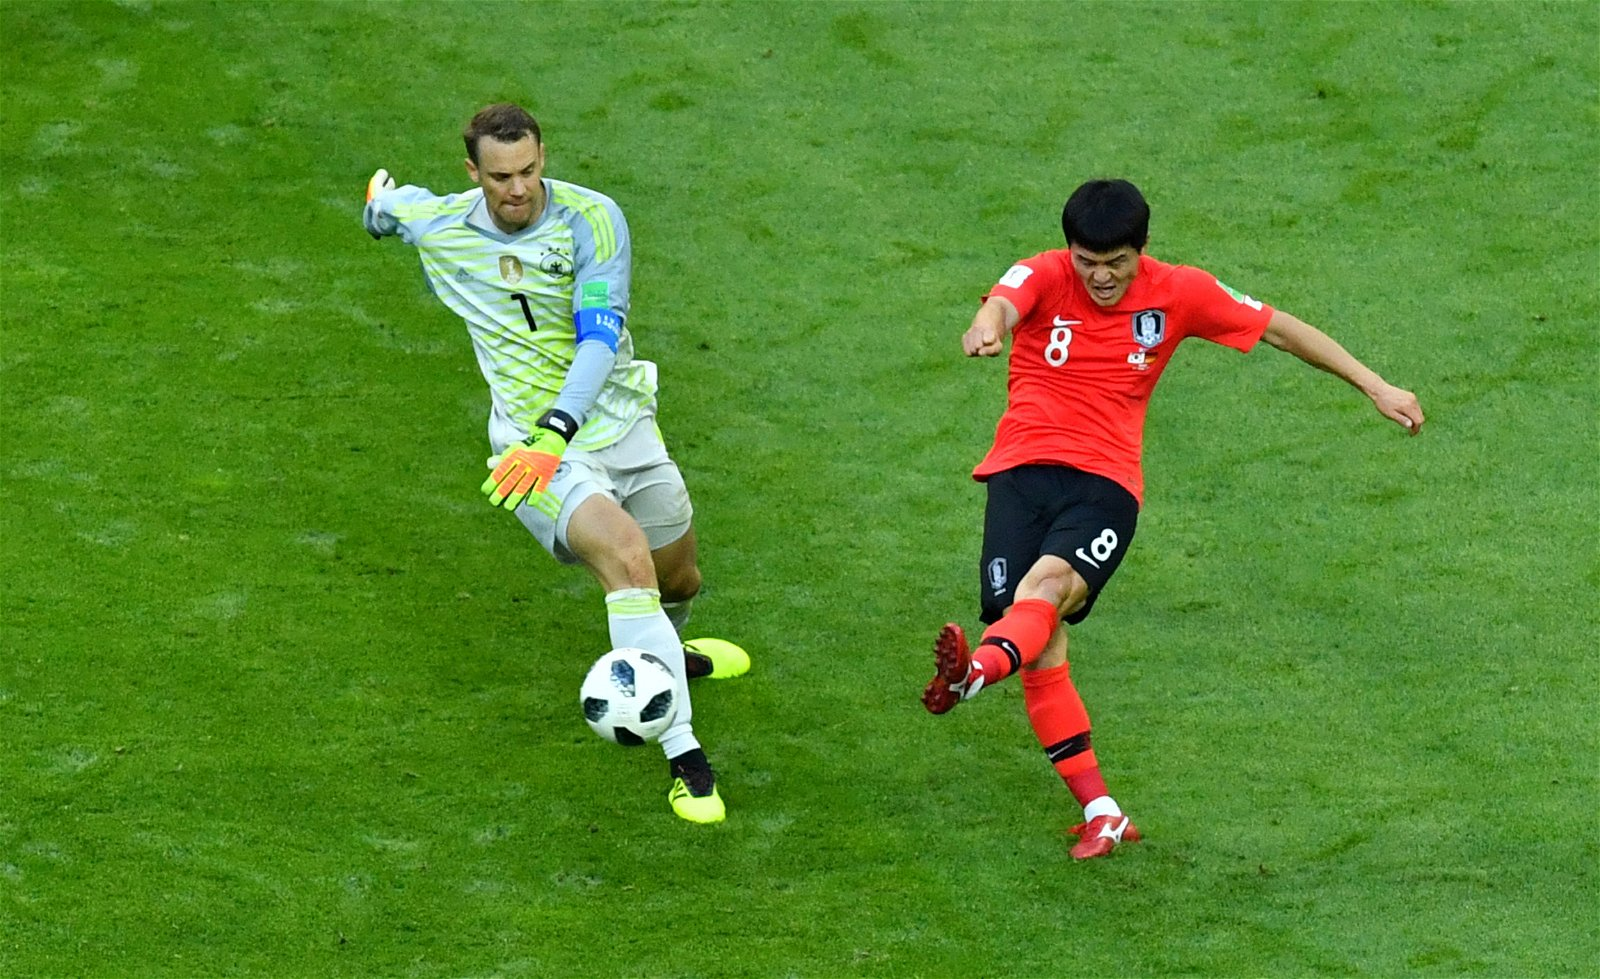 Manuel Neuer attempts to tackle a South Korea player